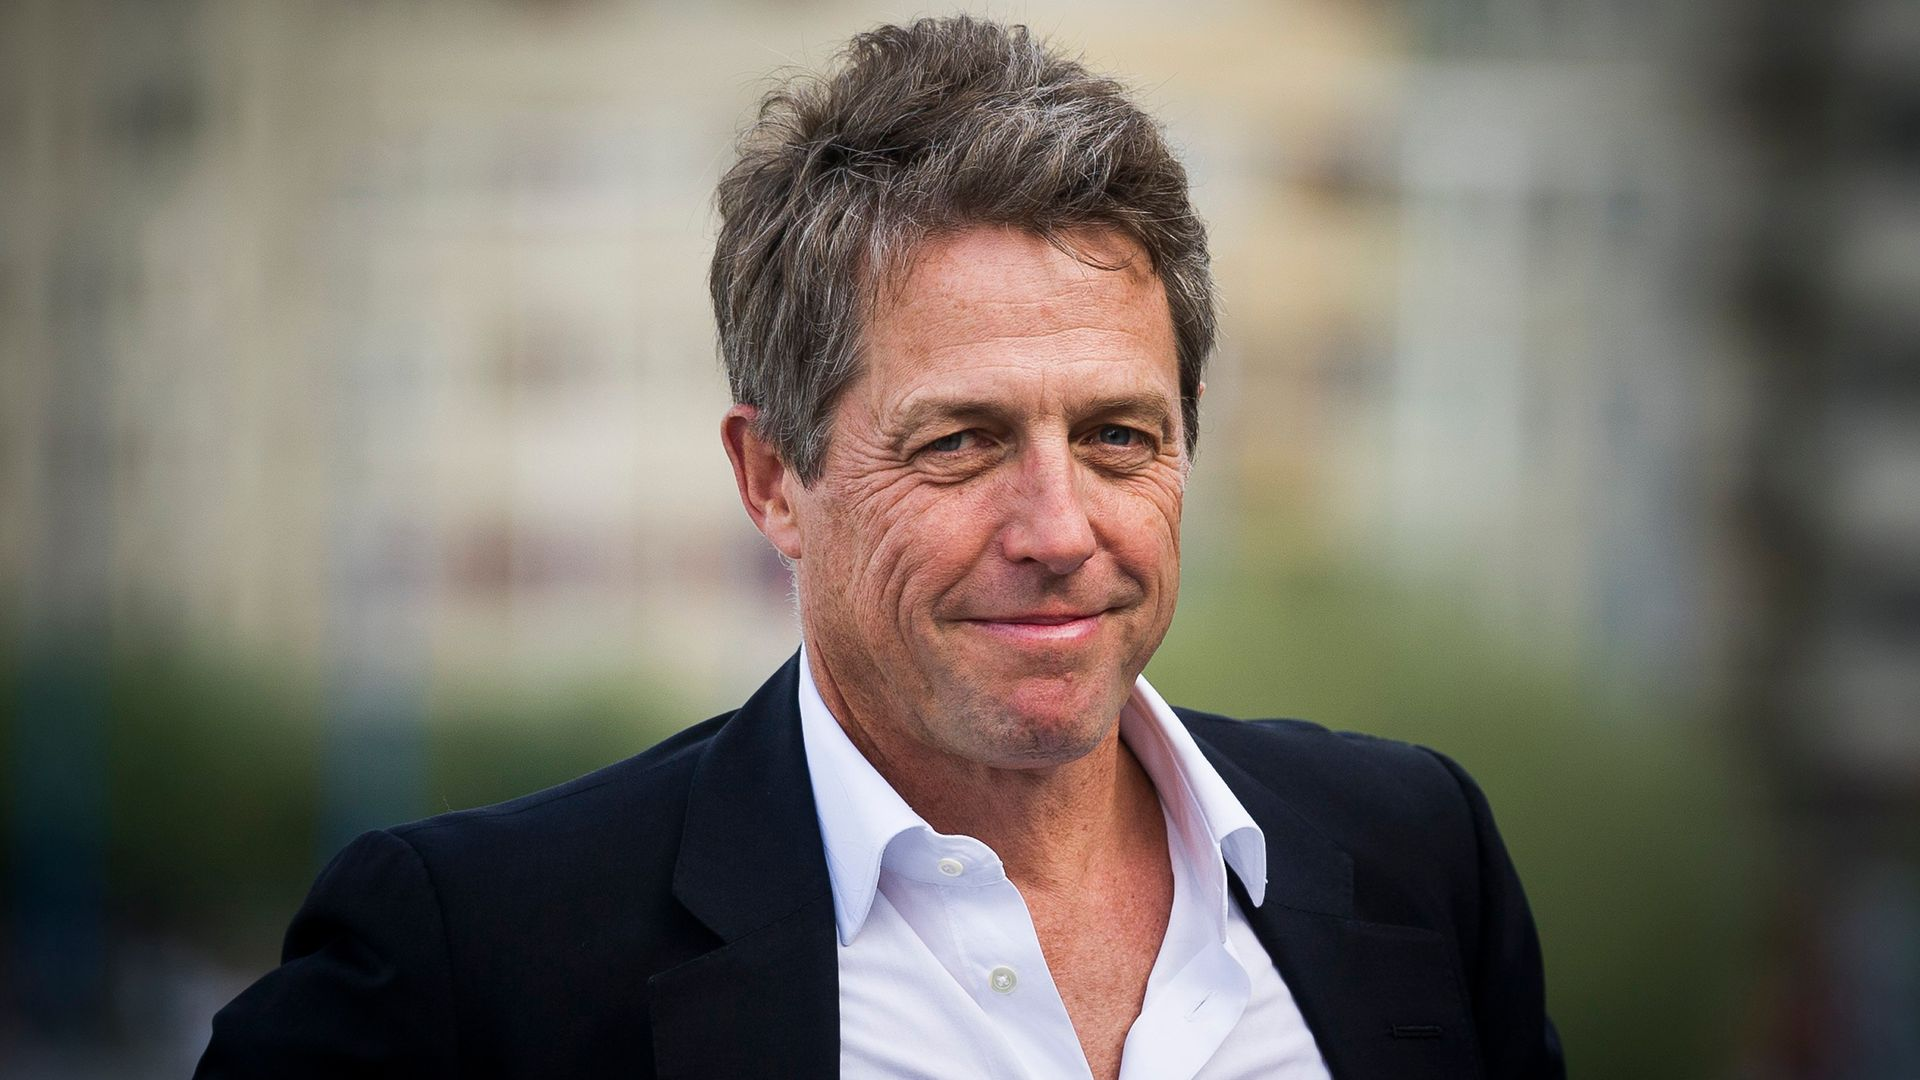 Hugh Grant attends a photocall for 'Florence Foster Jenkins (2016)' at the San Sebastian Film Festival - Credit: Getty Images